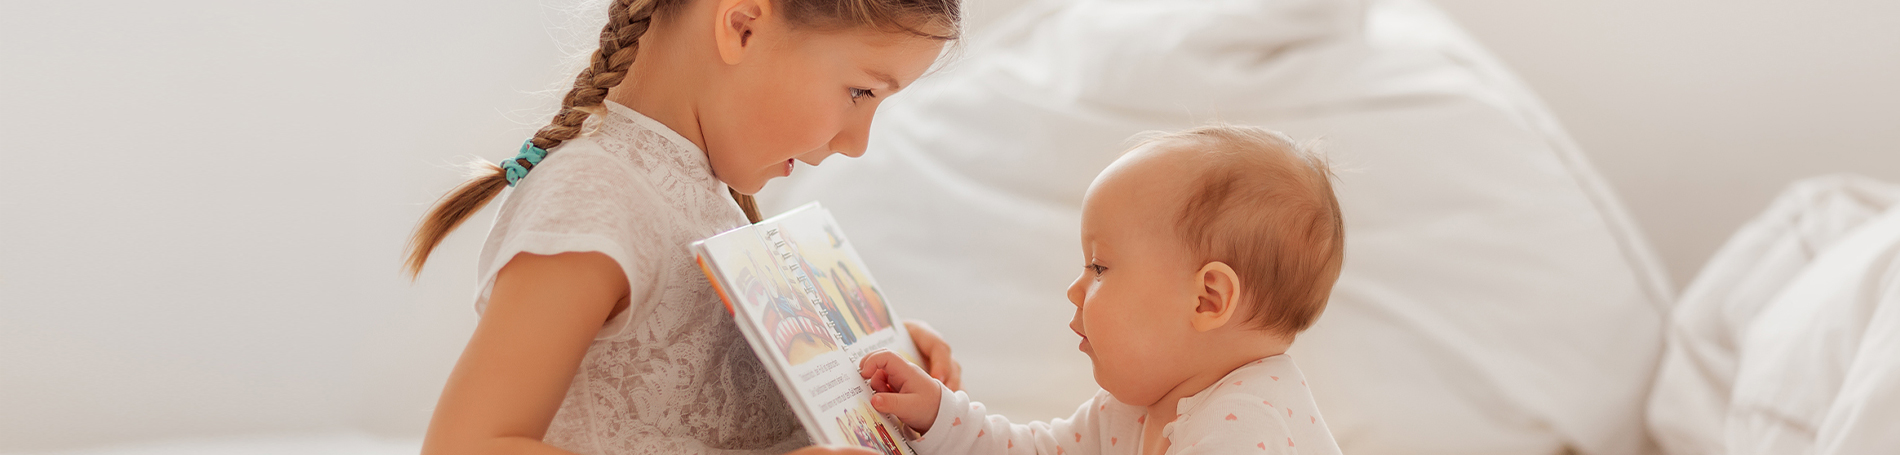 Little girl with plats showing her baby brother a book